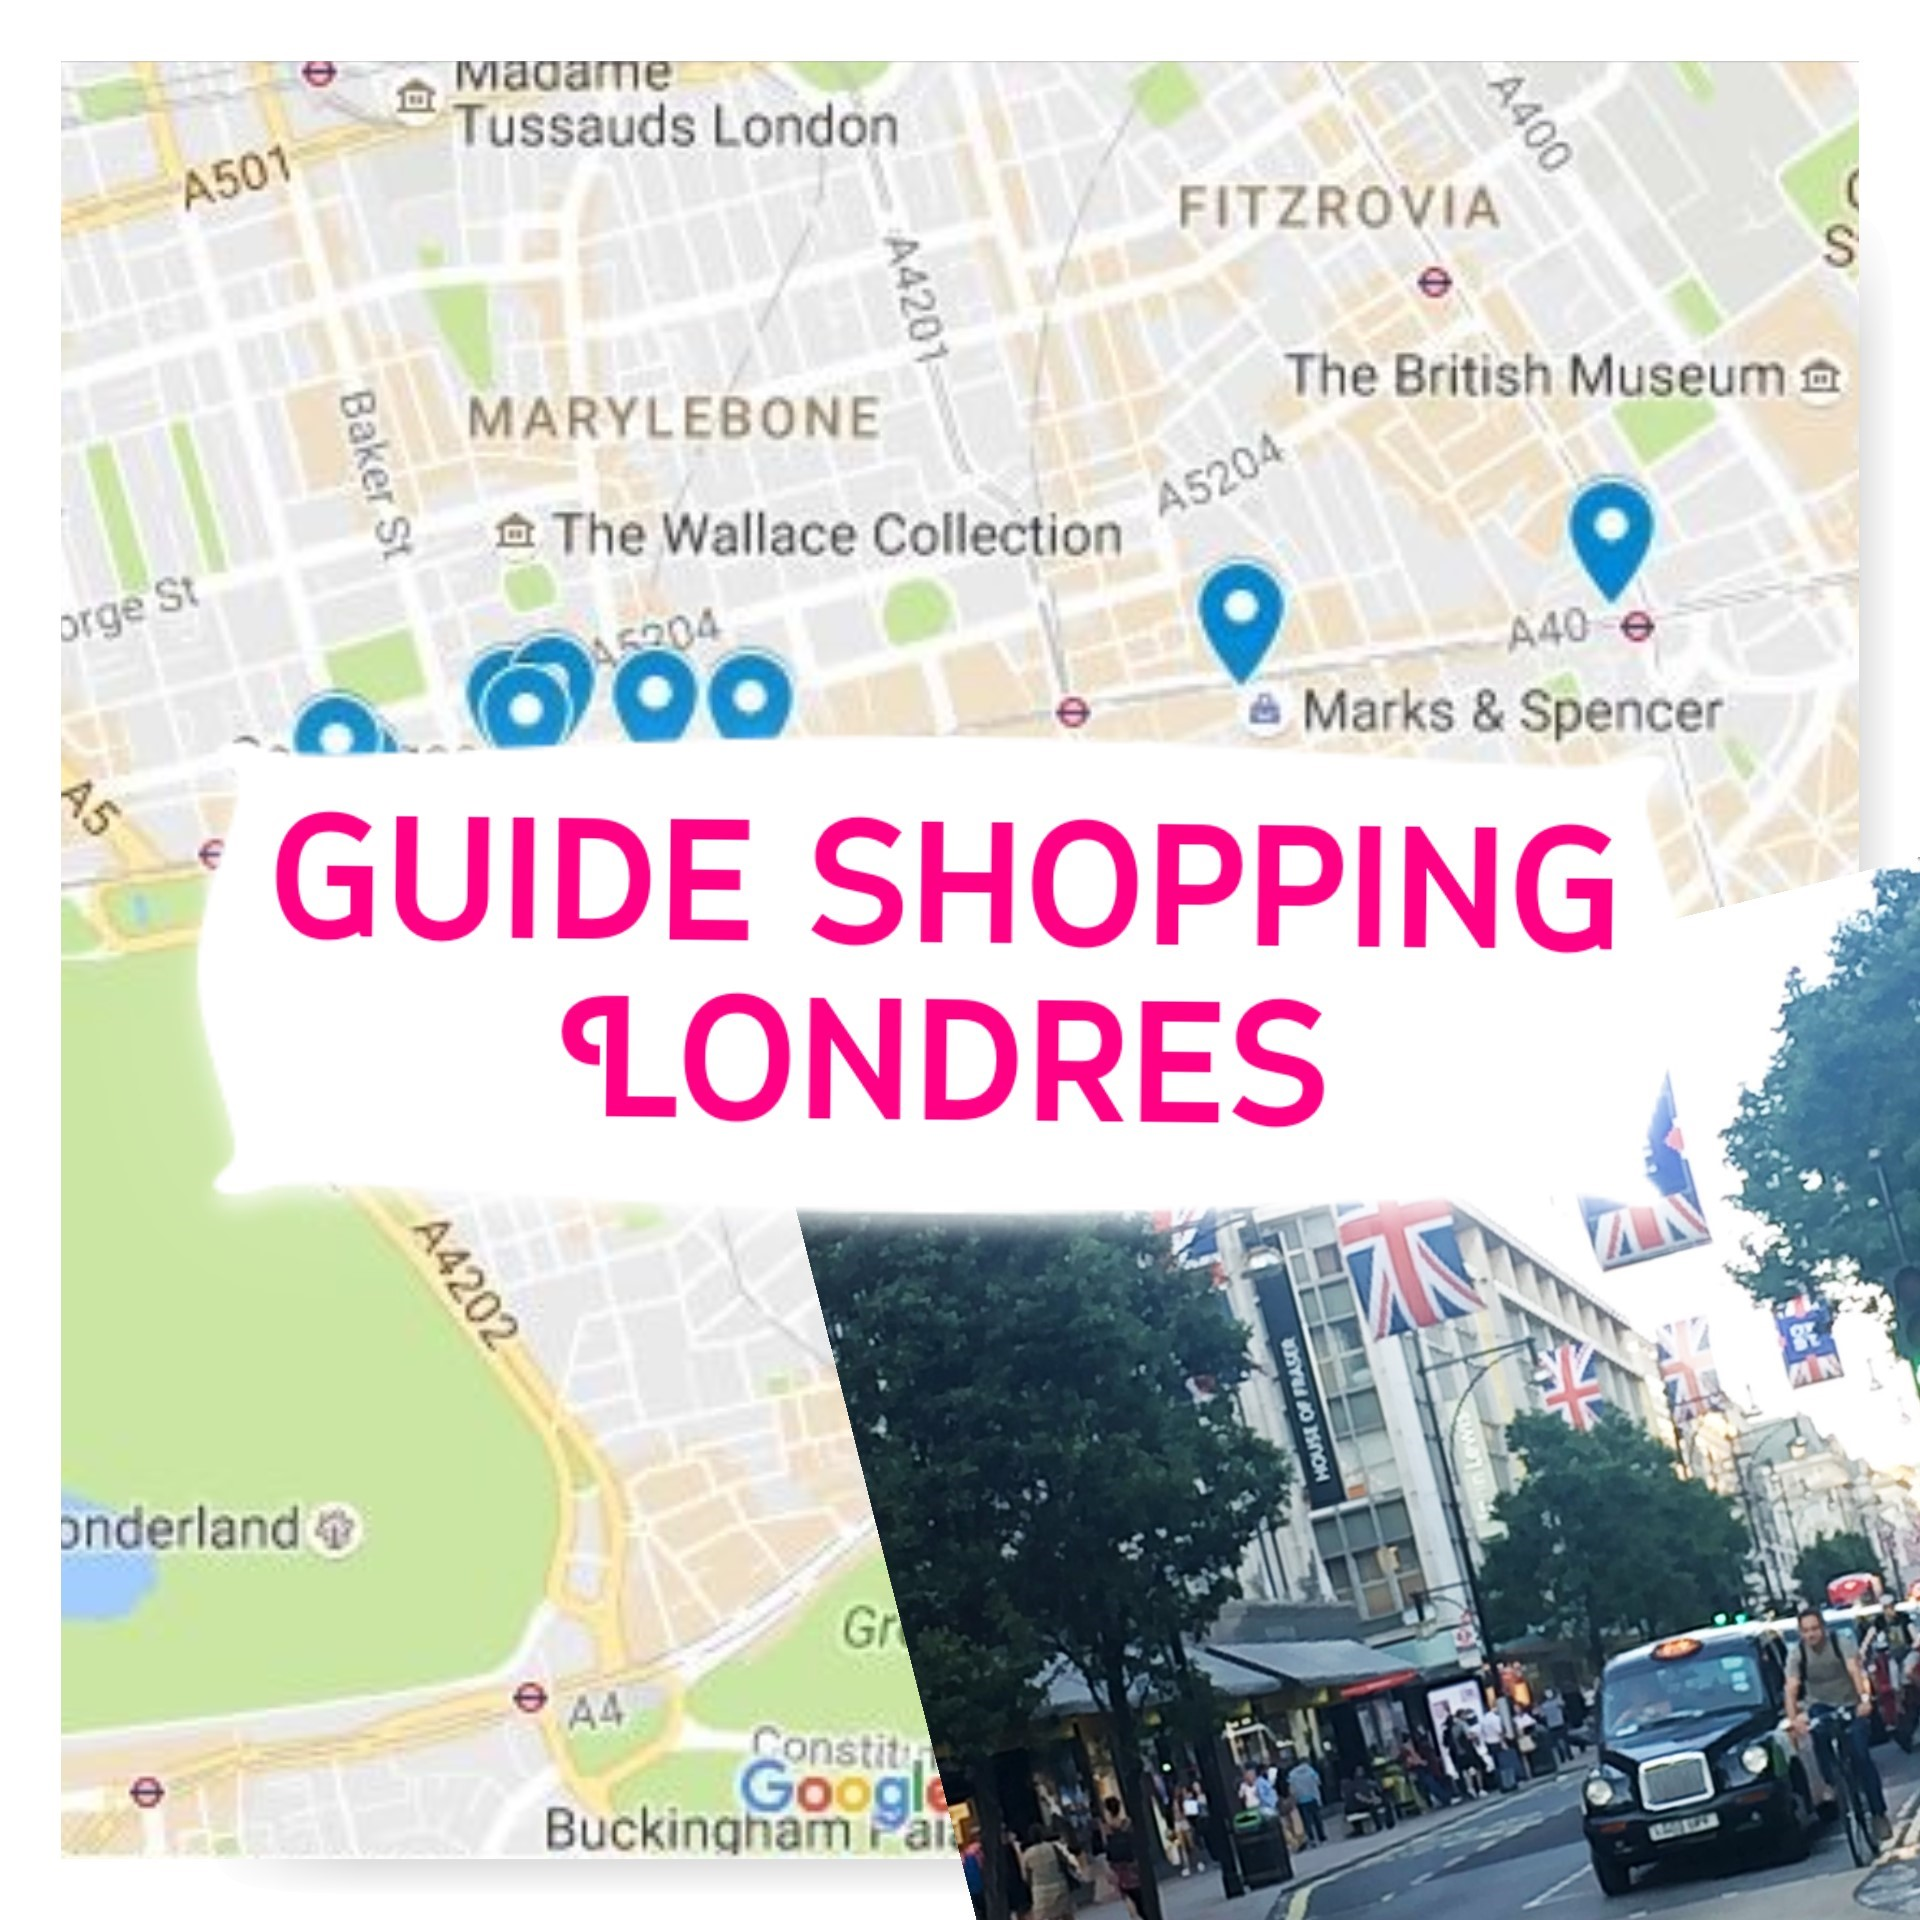 Guide shopping beaut londres copines de bons plans - Bon plan shopping londres ...